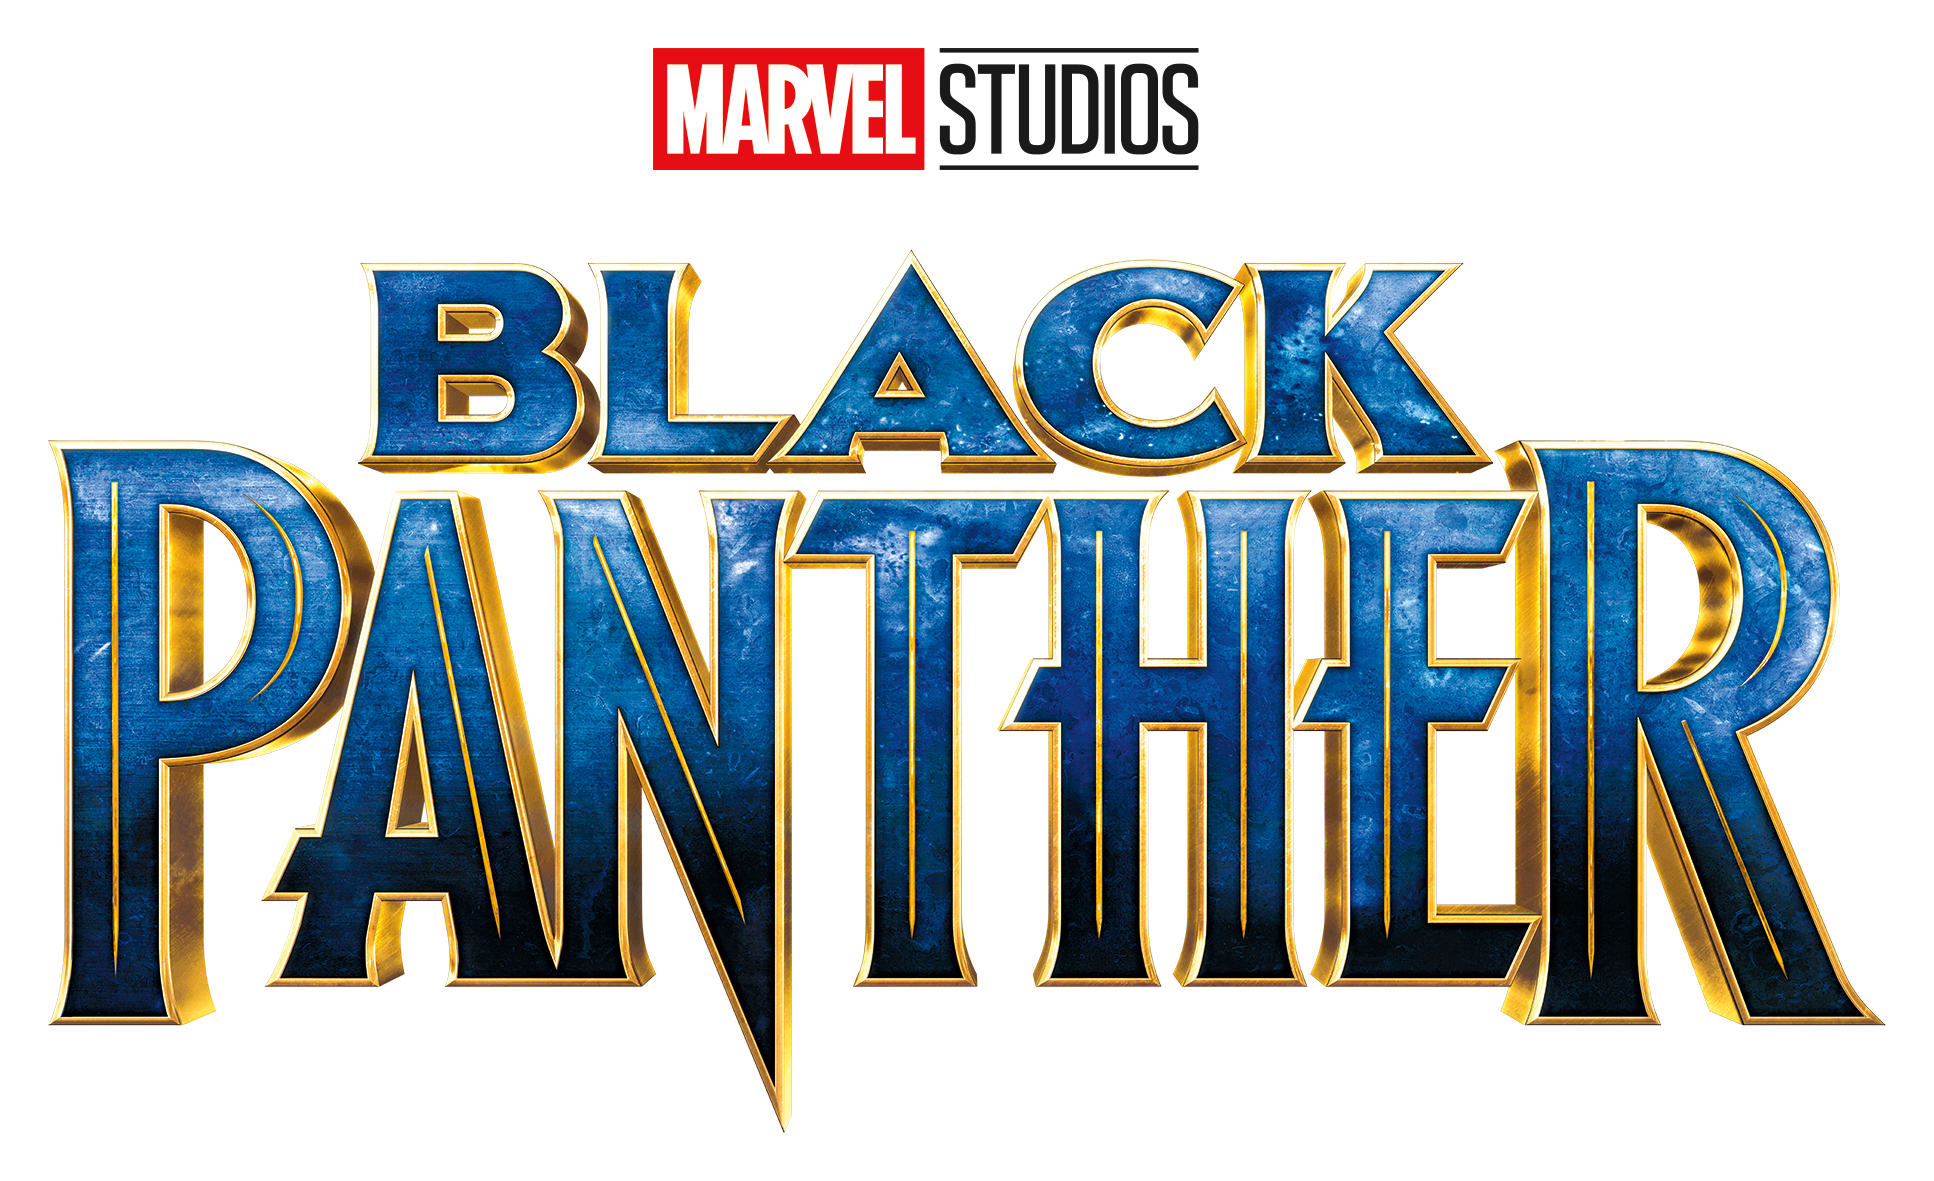 Black panther title png. New official logo marvelstudios